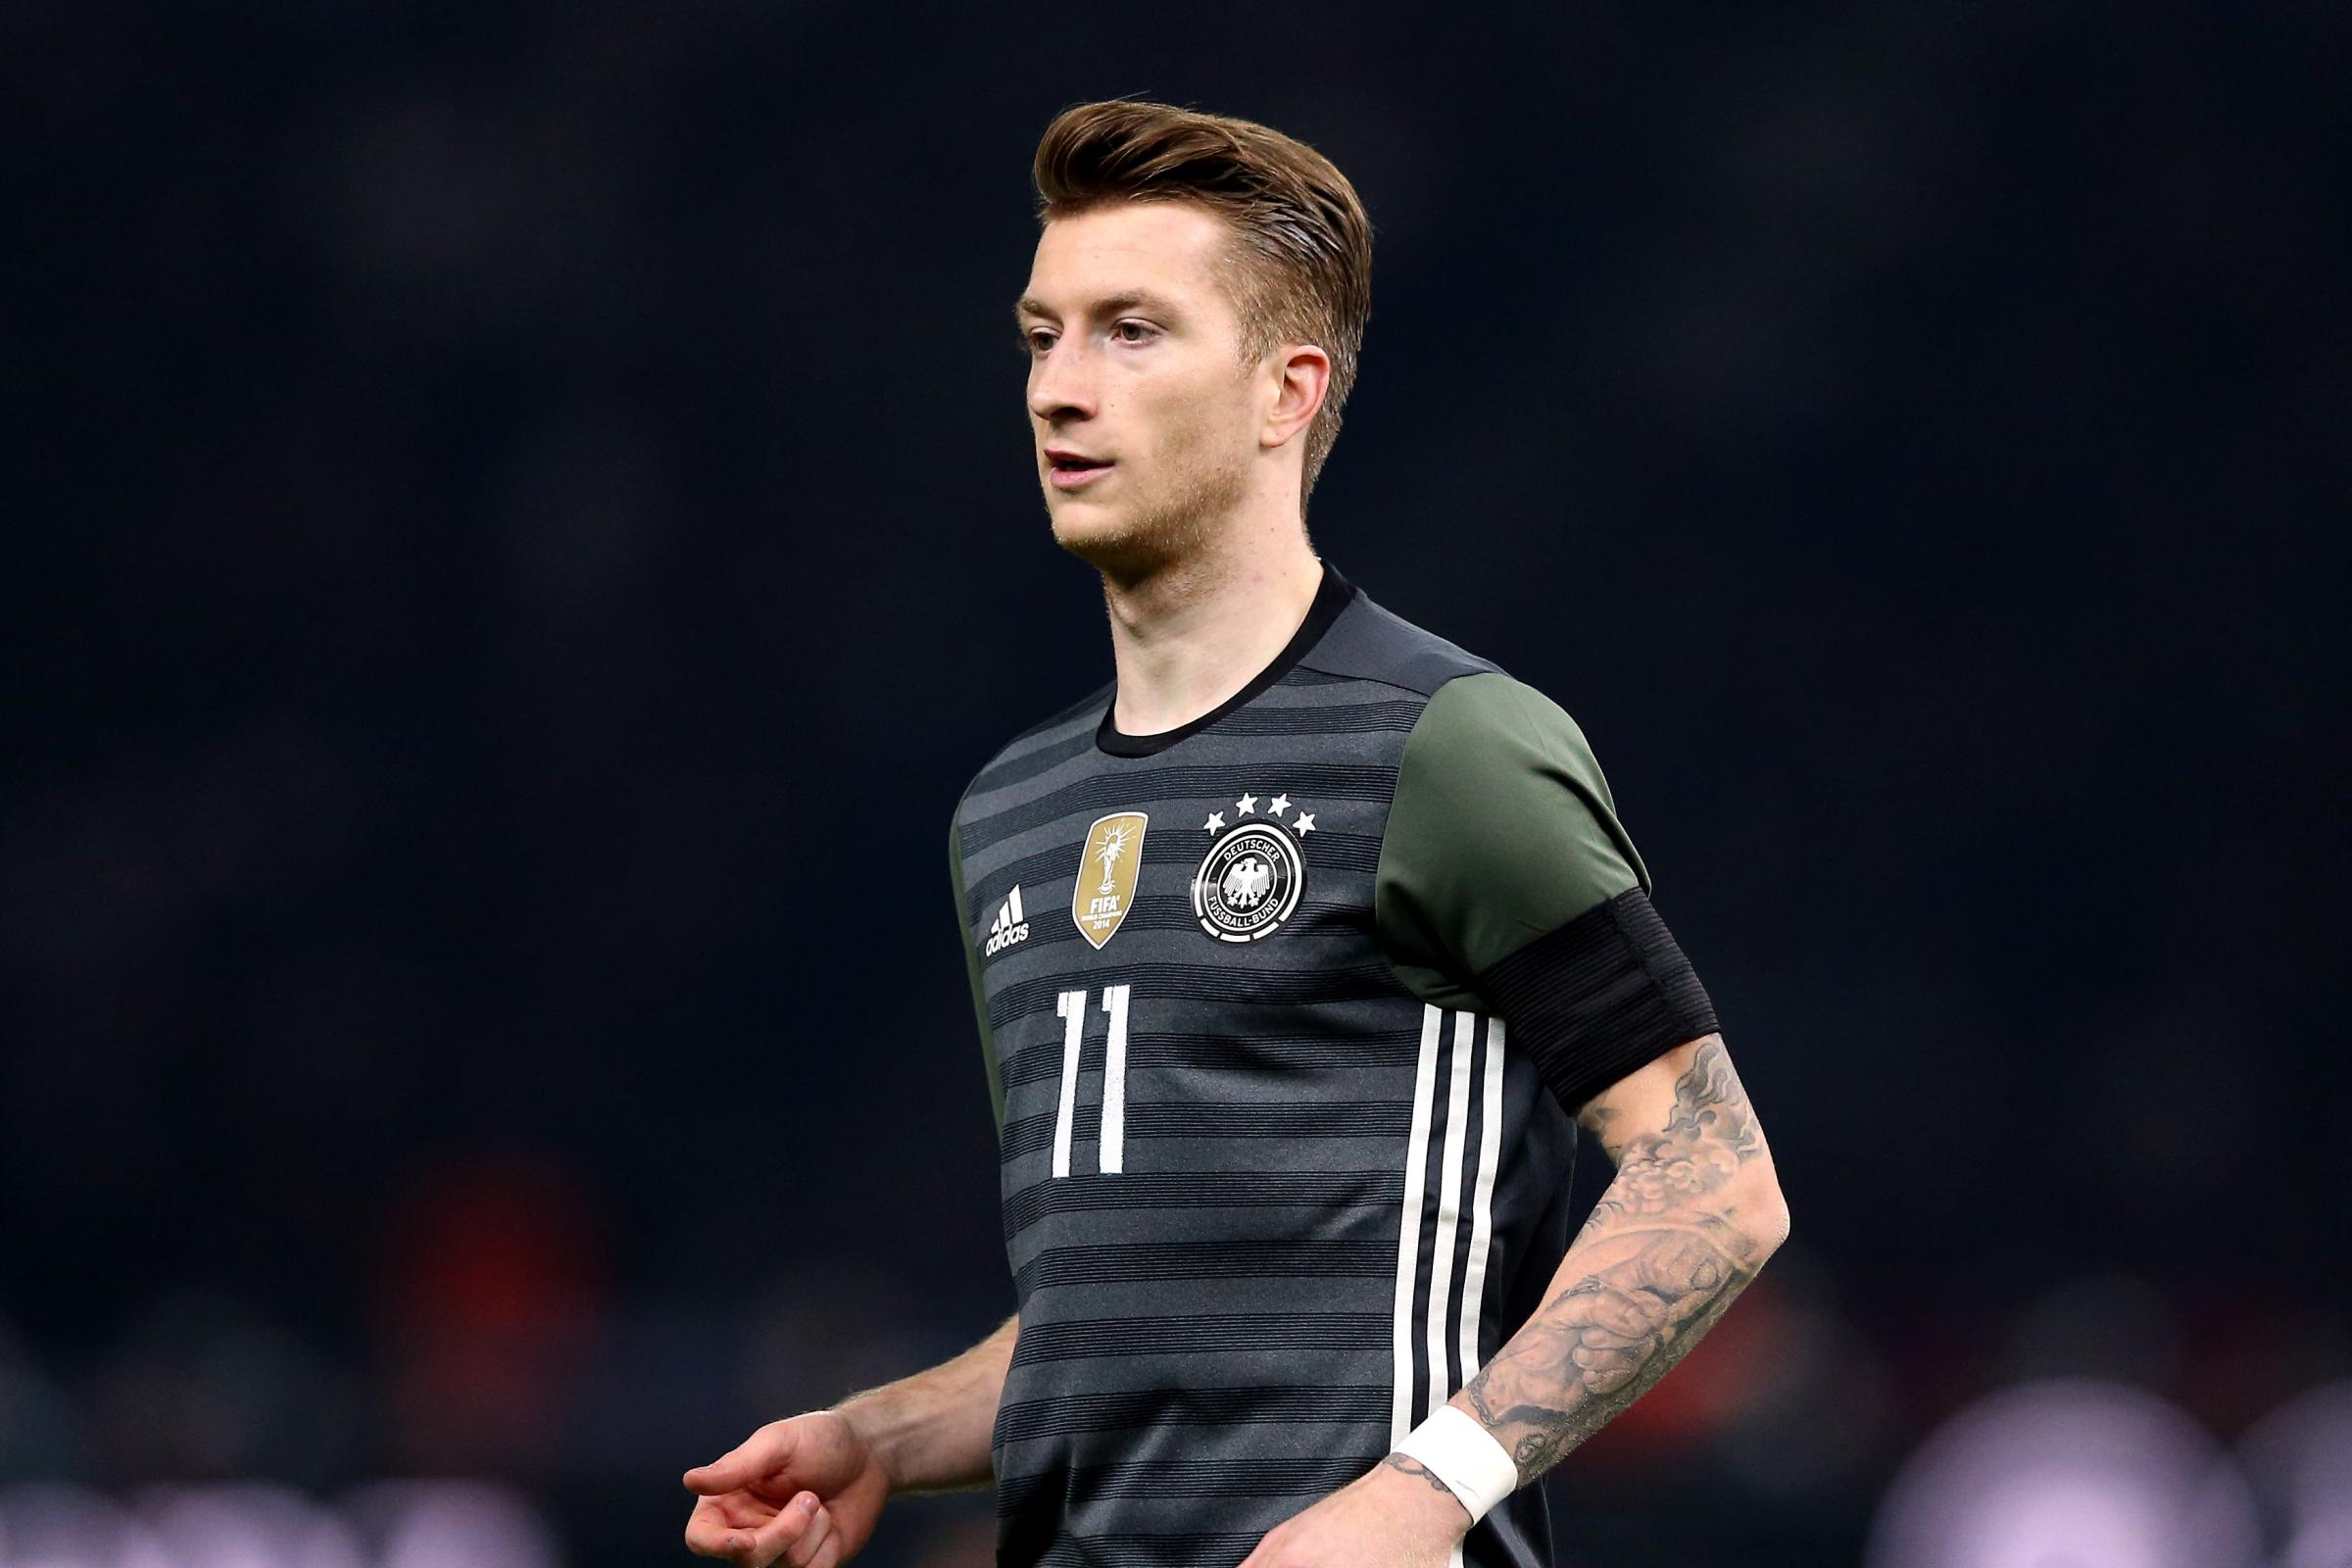 Marco Reus played well against France.